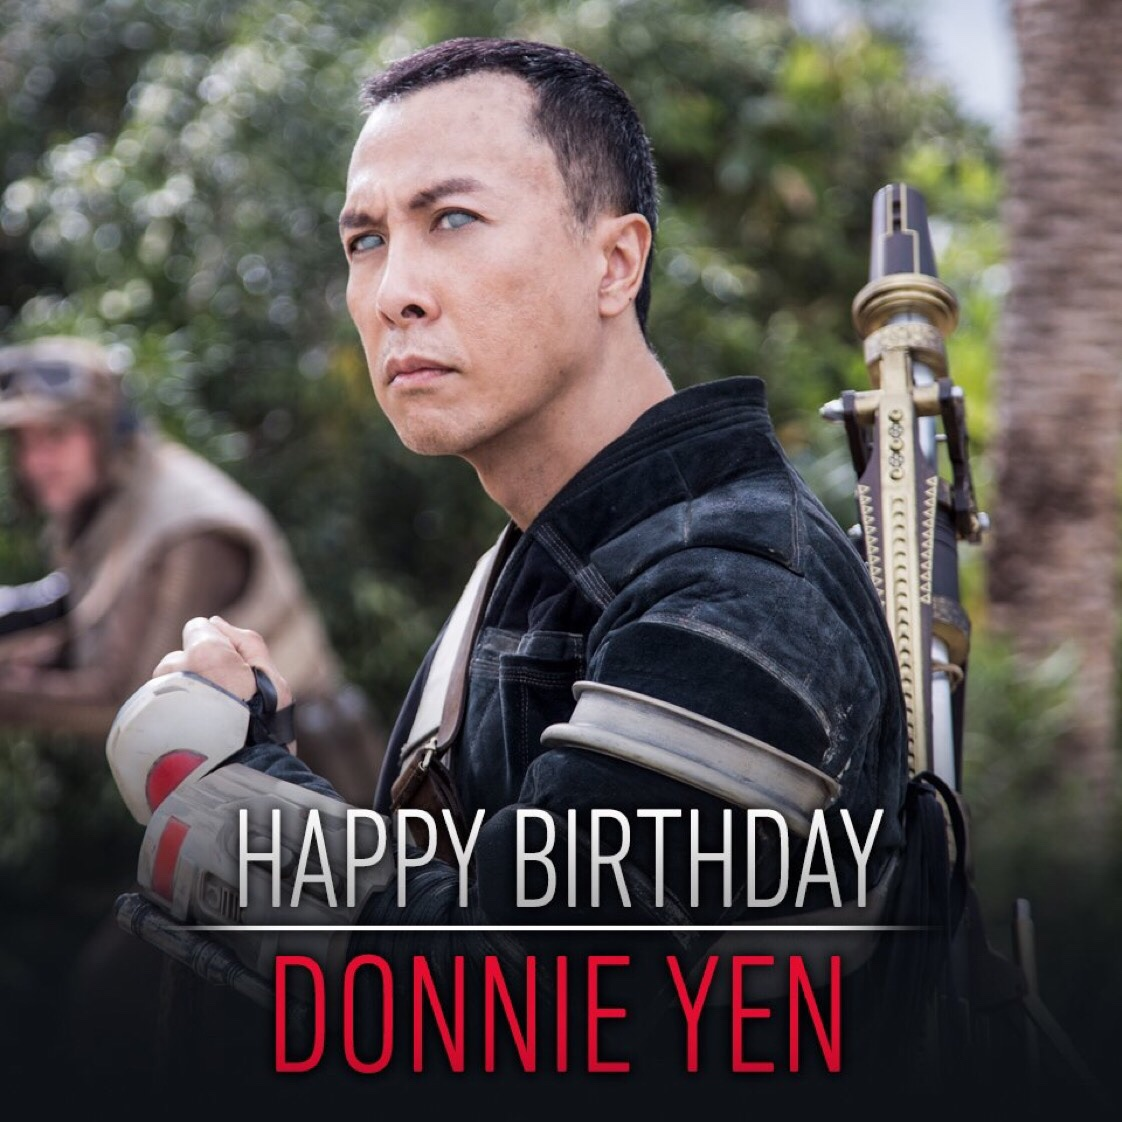 Happy Birthday to Donnie Yen AKA Chirrut Îmwe